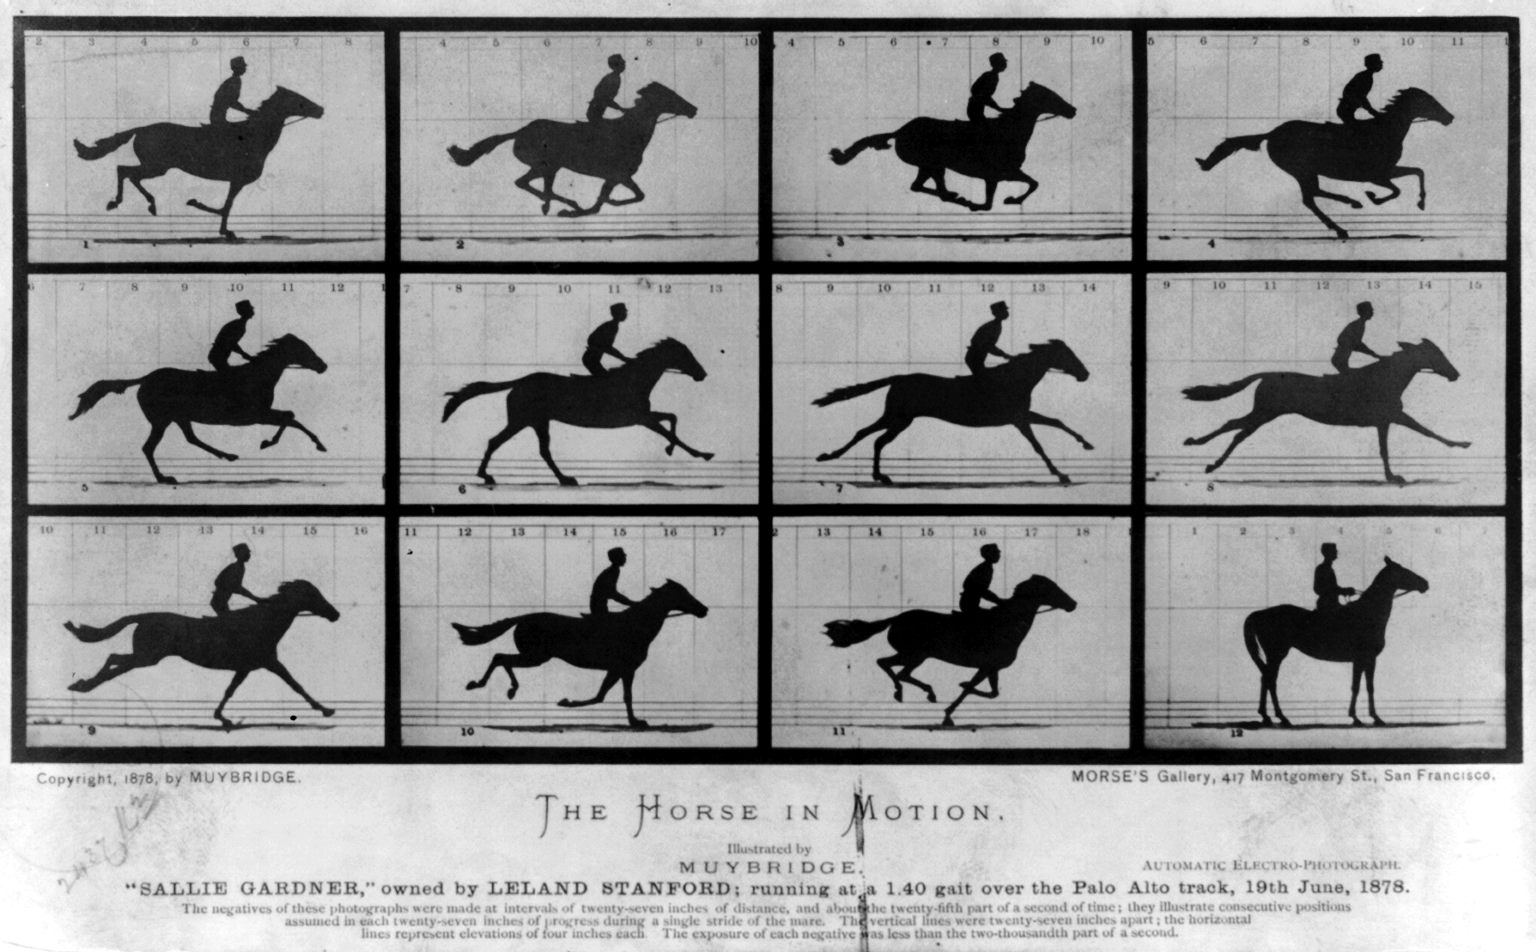 http://upload.wikimedia.org/wikipedia/commons/7/73/The_Horse_in_Motion.jpg